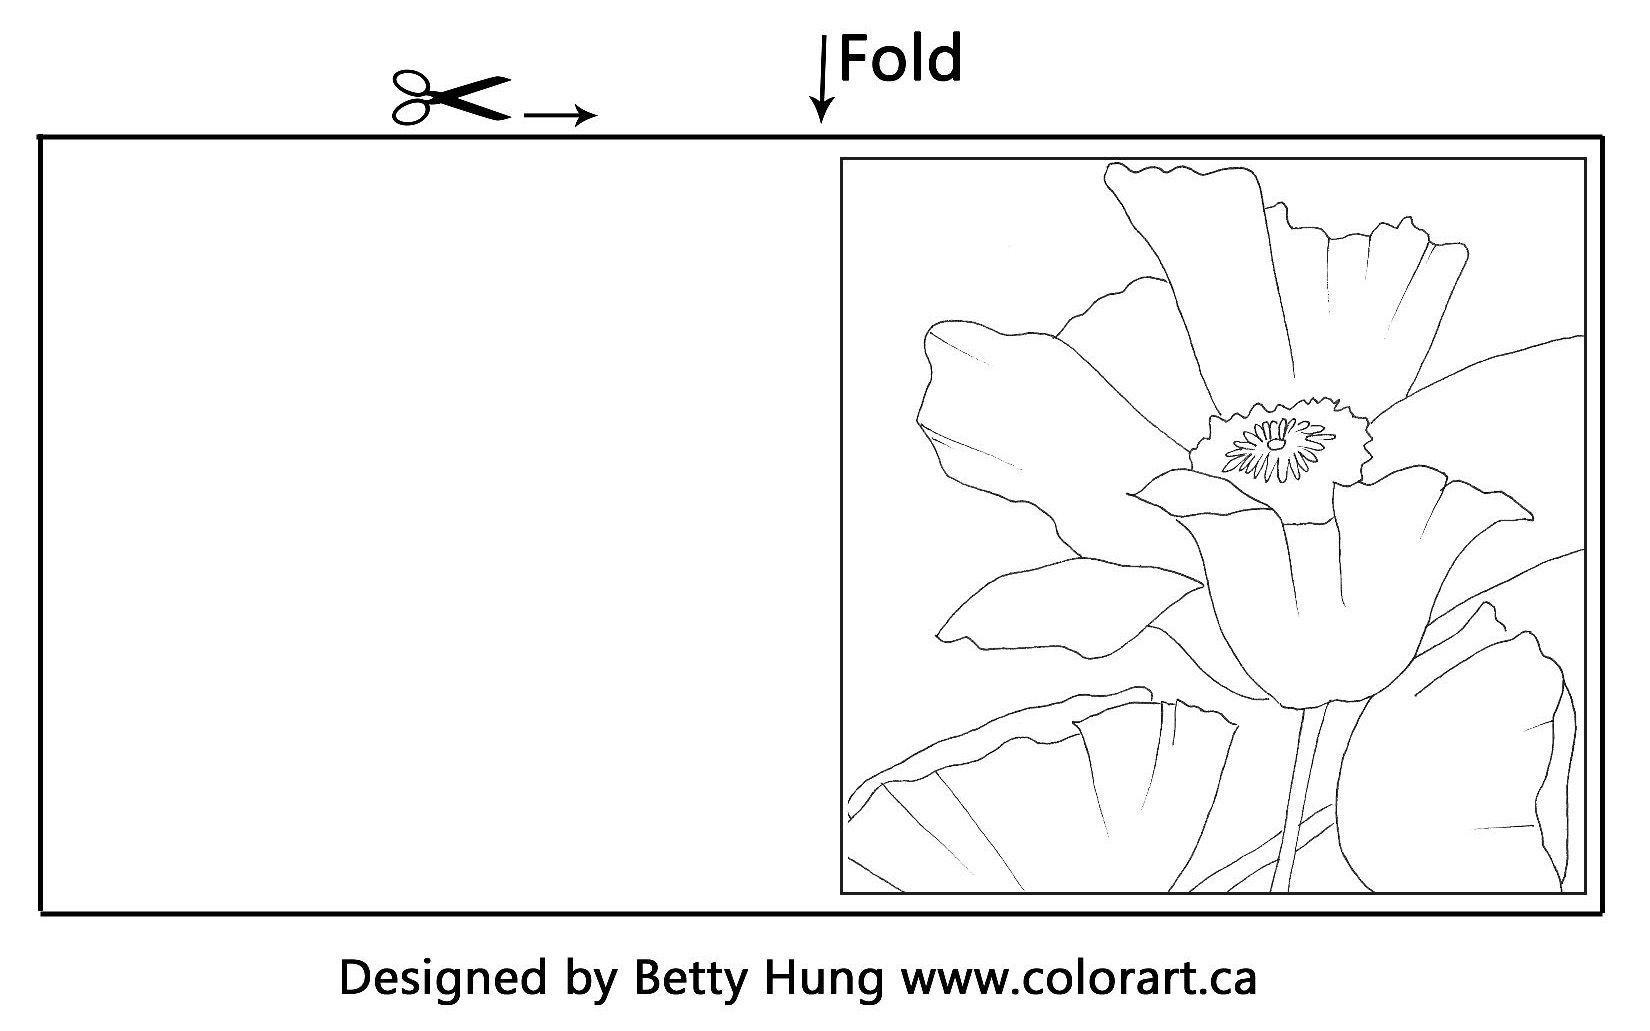 Free Poppy Illustration drawn by Betty Hung